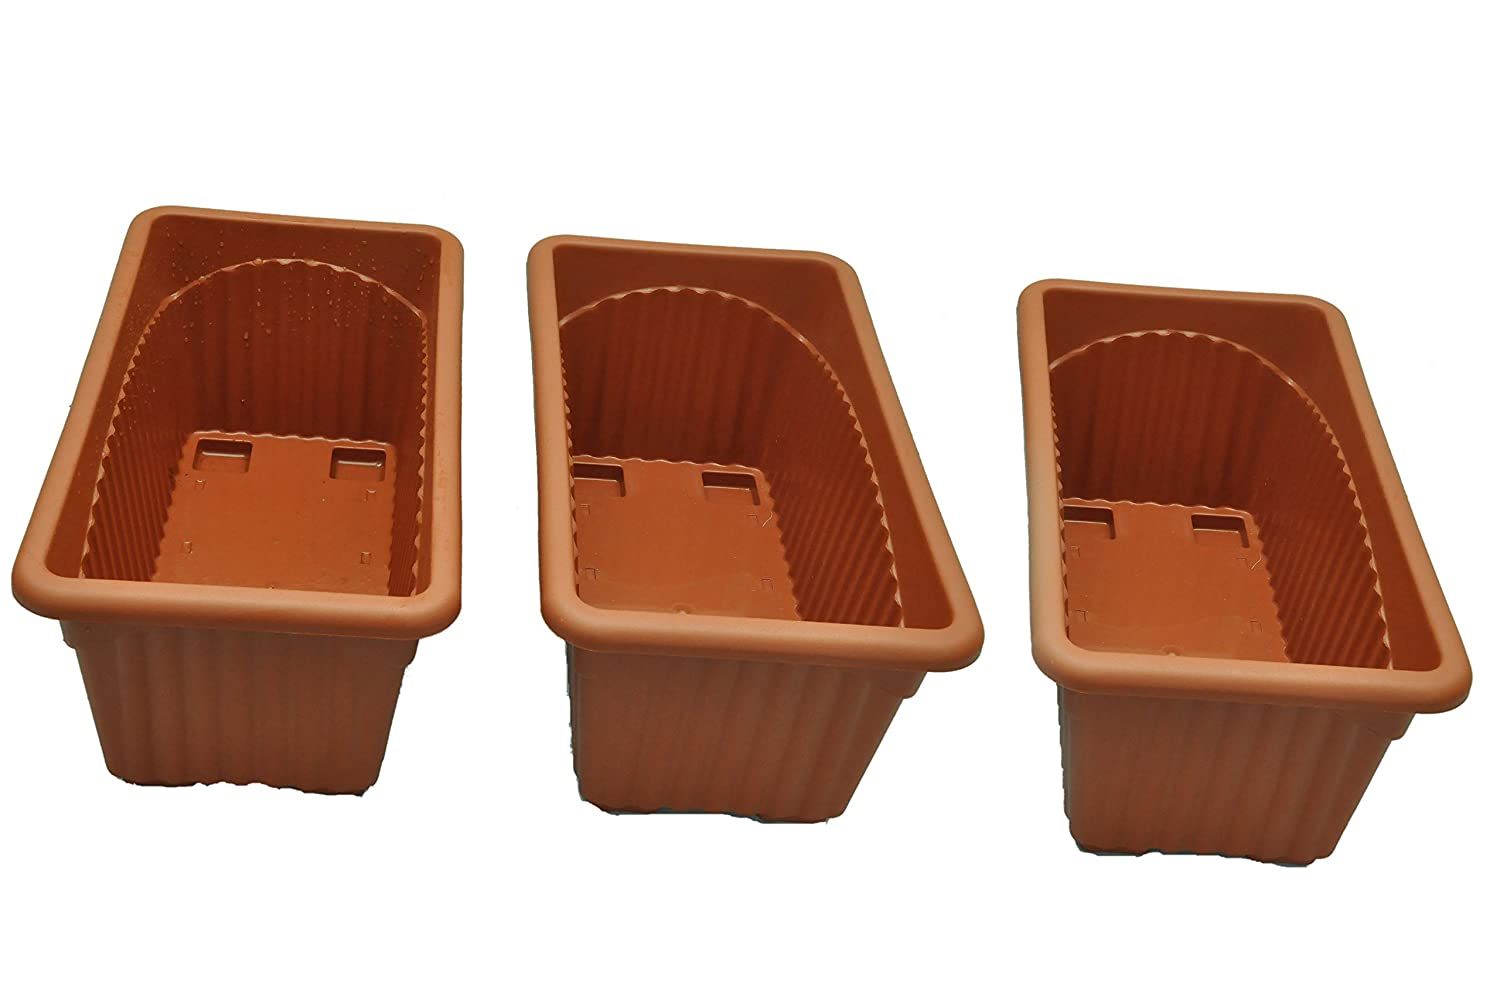 First Smart Deal Plastic Rectangle Pot (Brown, Pack of 3)